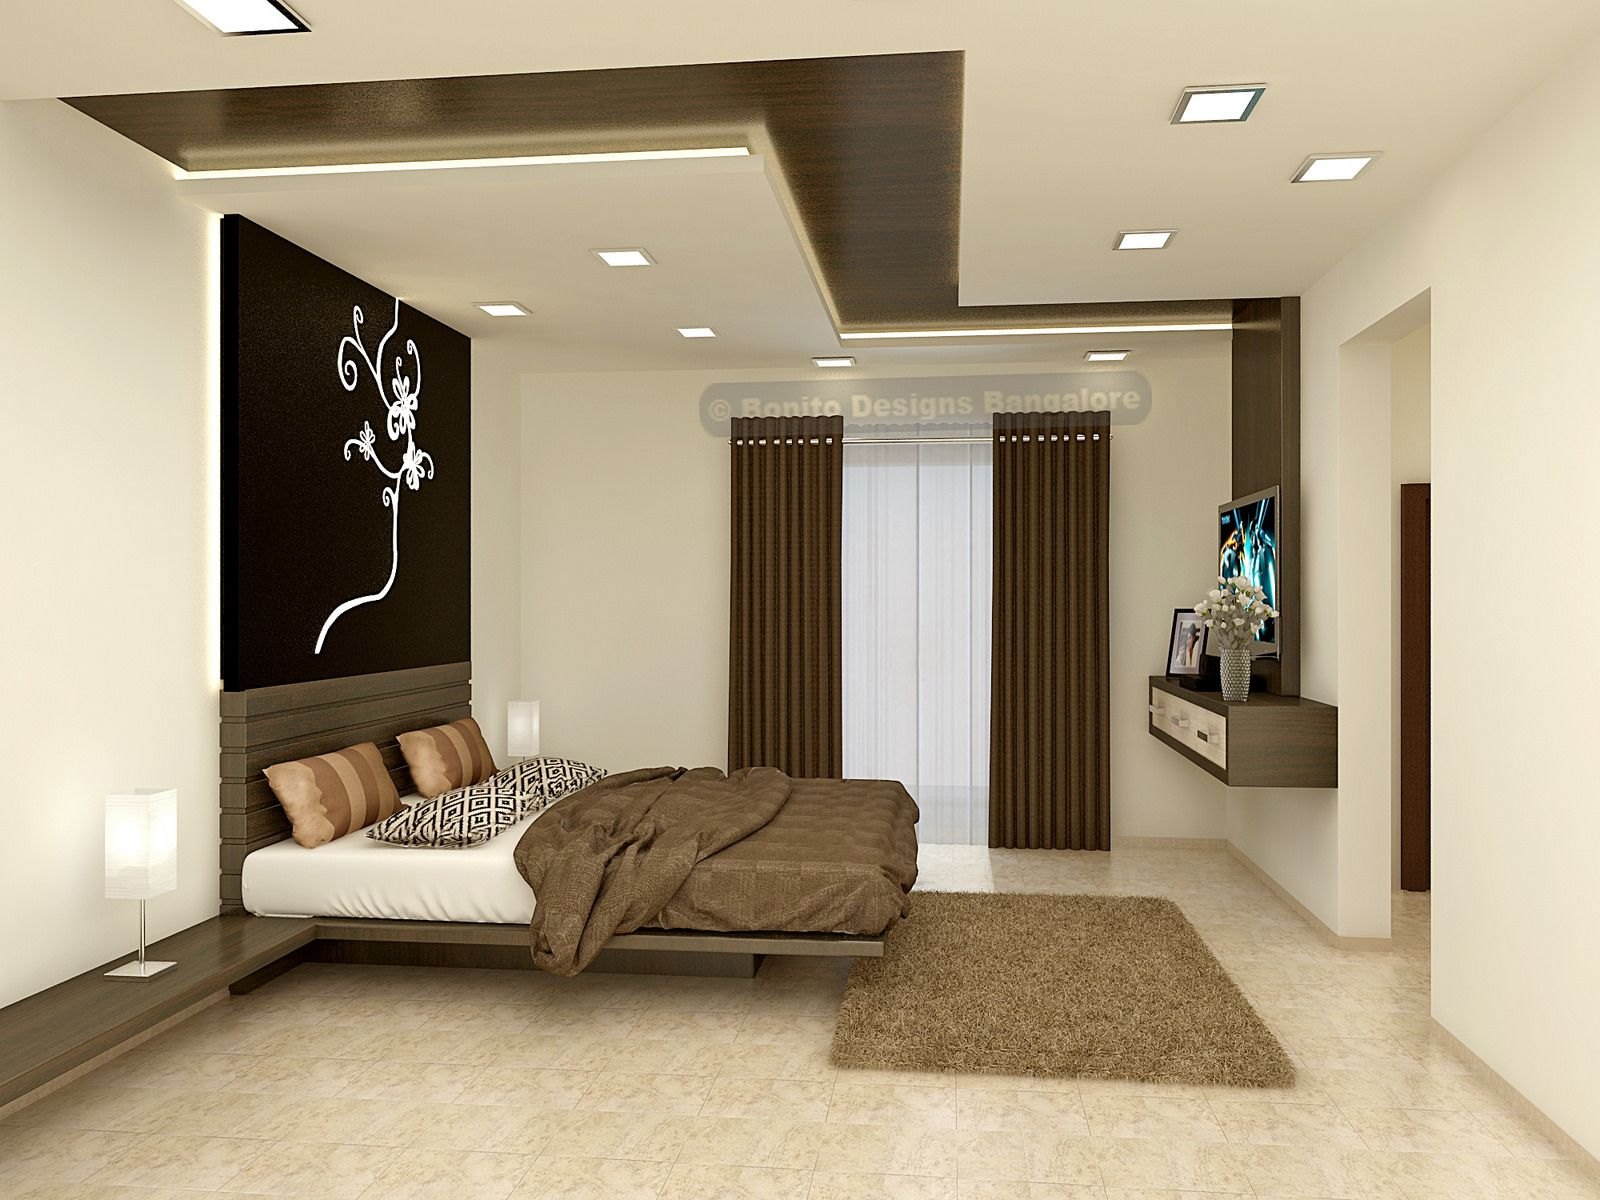 Ceiling Design Ideas 2 share Httpsflickrpxjsatd Sandepmbr 1